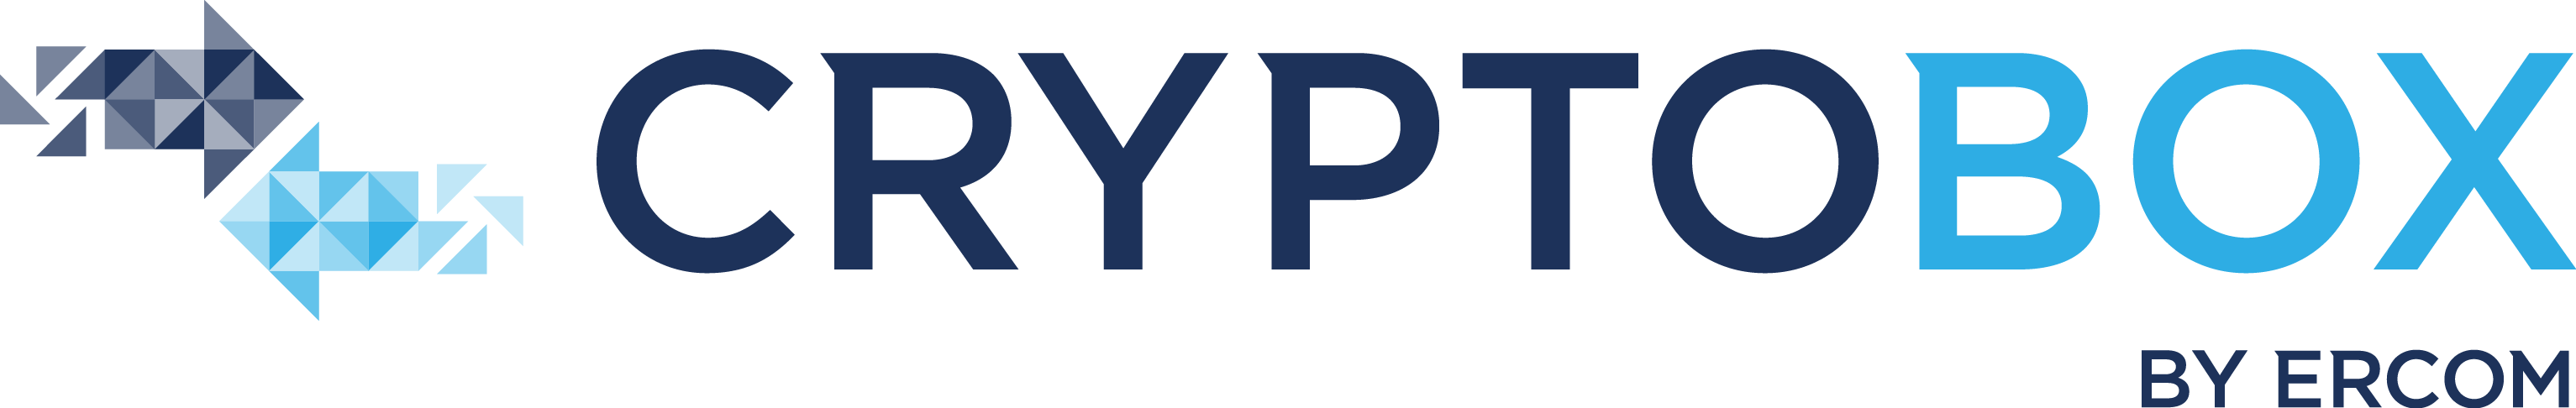 LOGO_Cryptobox_RVB